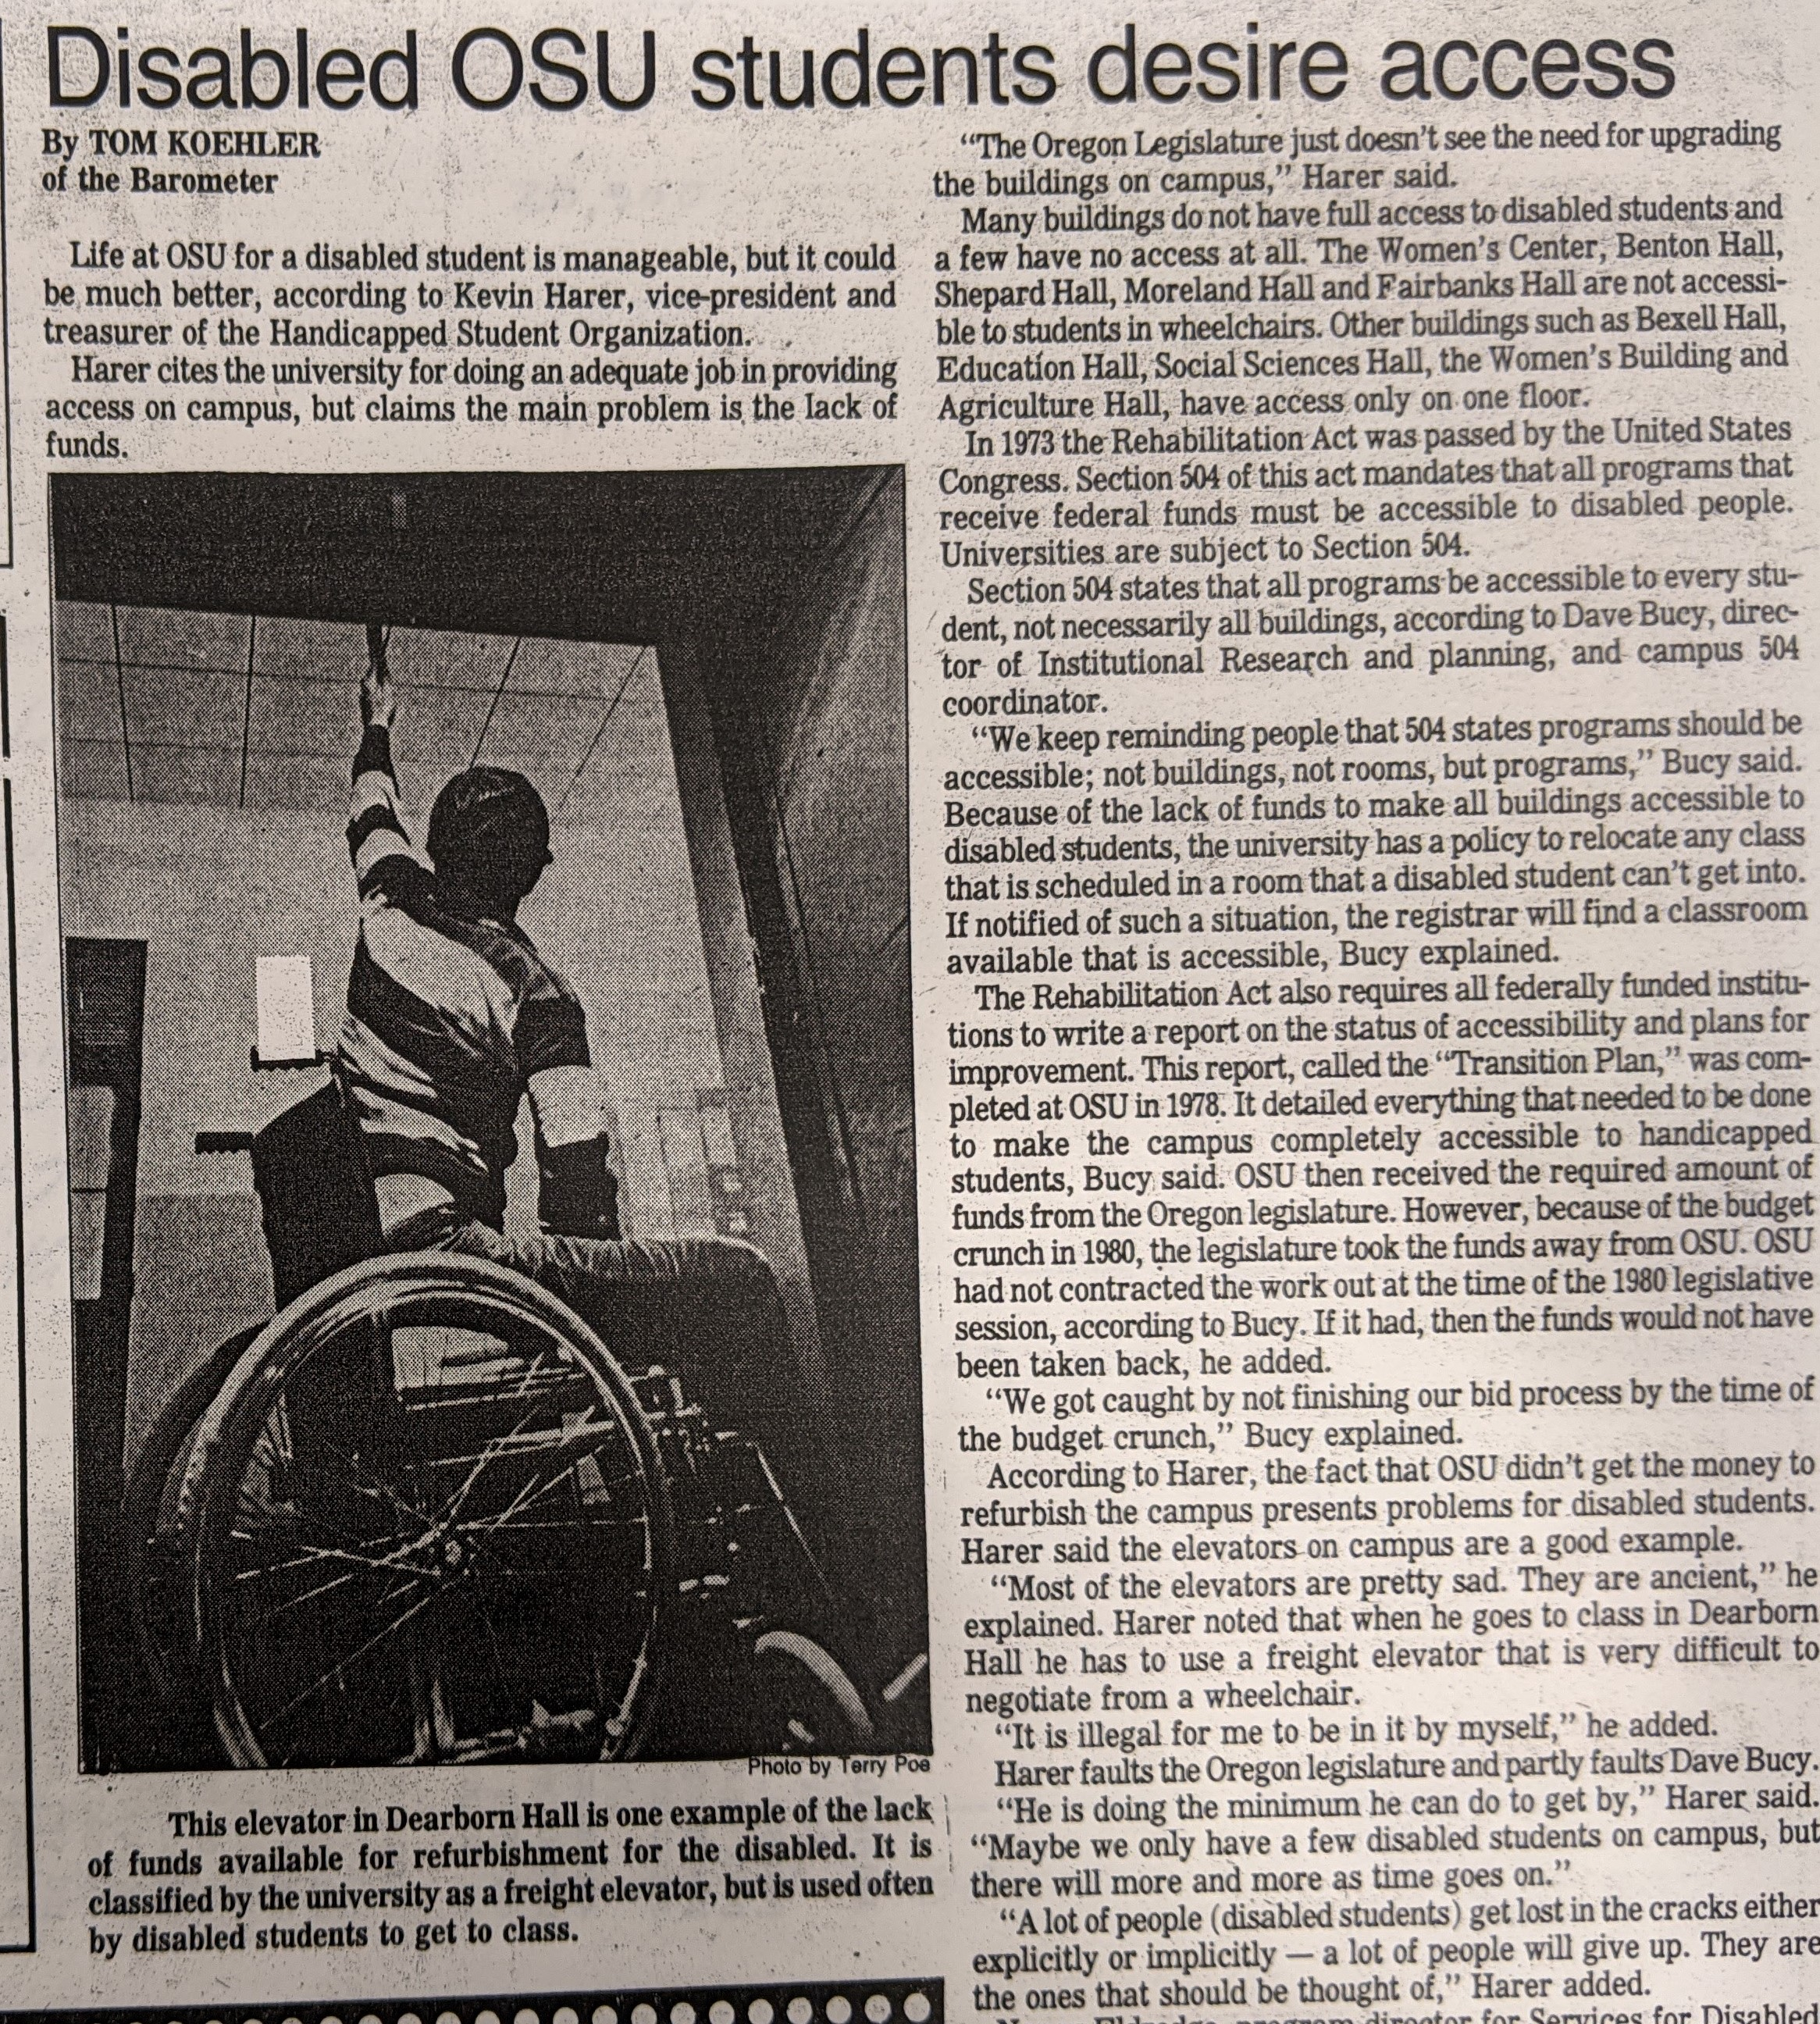 """Photo of a black and white print newspaper article with a headline reading """"Disabled OSU students desire access."""" An accompanying photo shows a student in a wheelchair inside a freight elevator. The photo is taken inside the elevator, behind the student, who is pulling on a rope to lower the elevator door."""